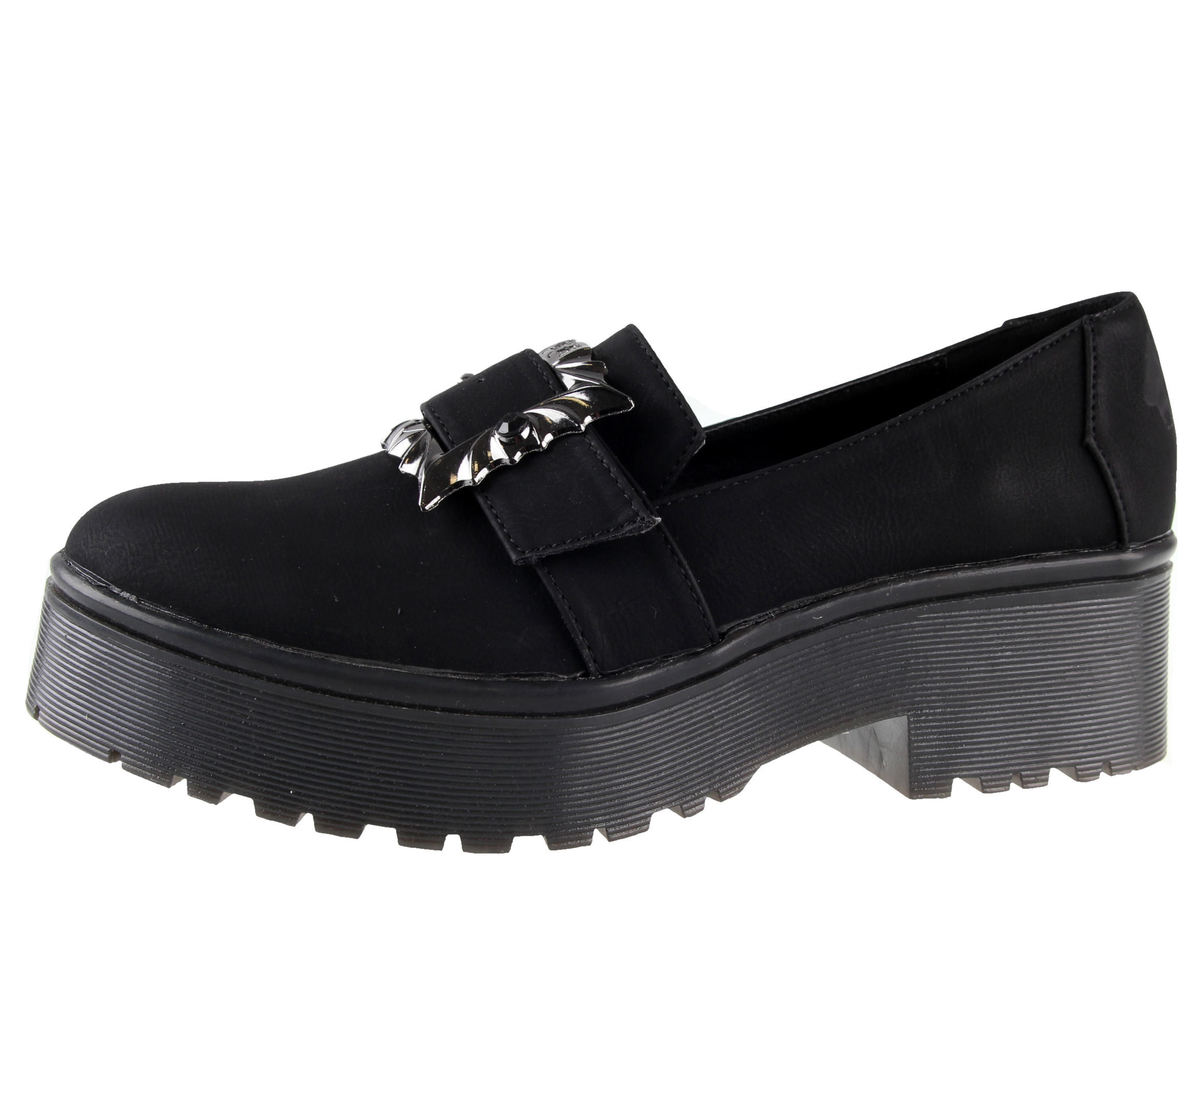 boty dámské IRON FIST - Nocturnal Cleated Sole Flat - IFW006008-BLACK 43